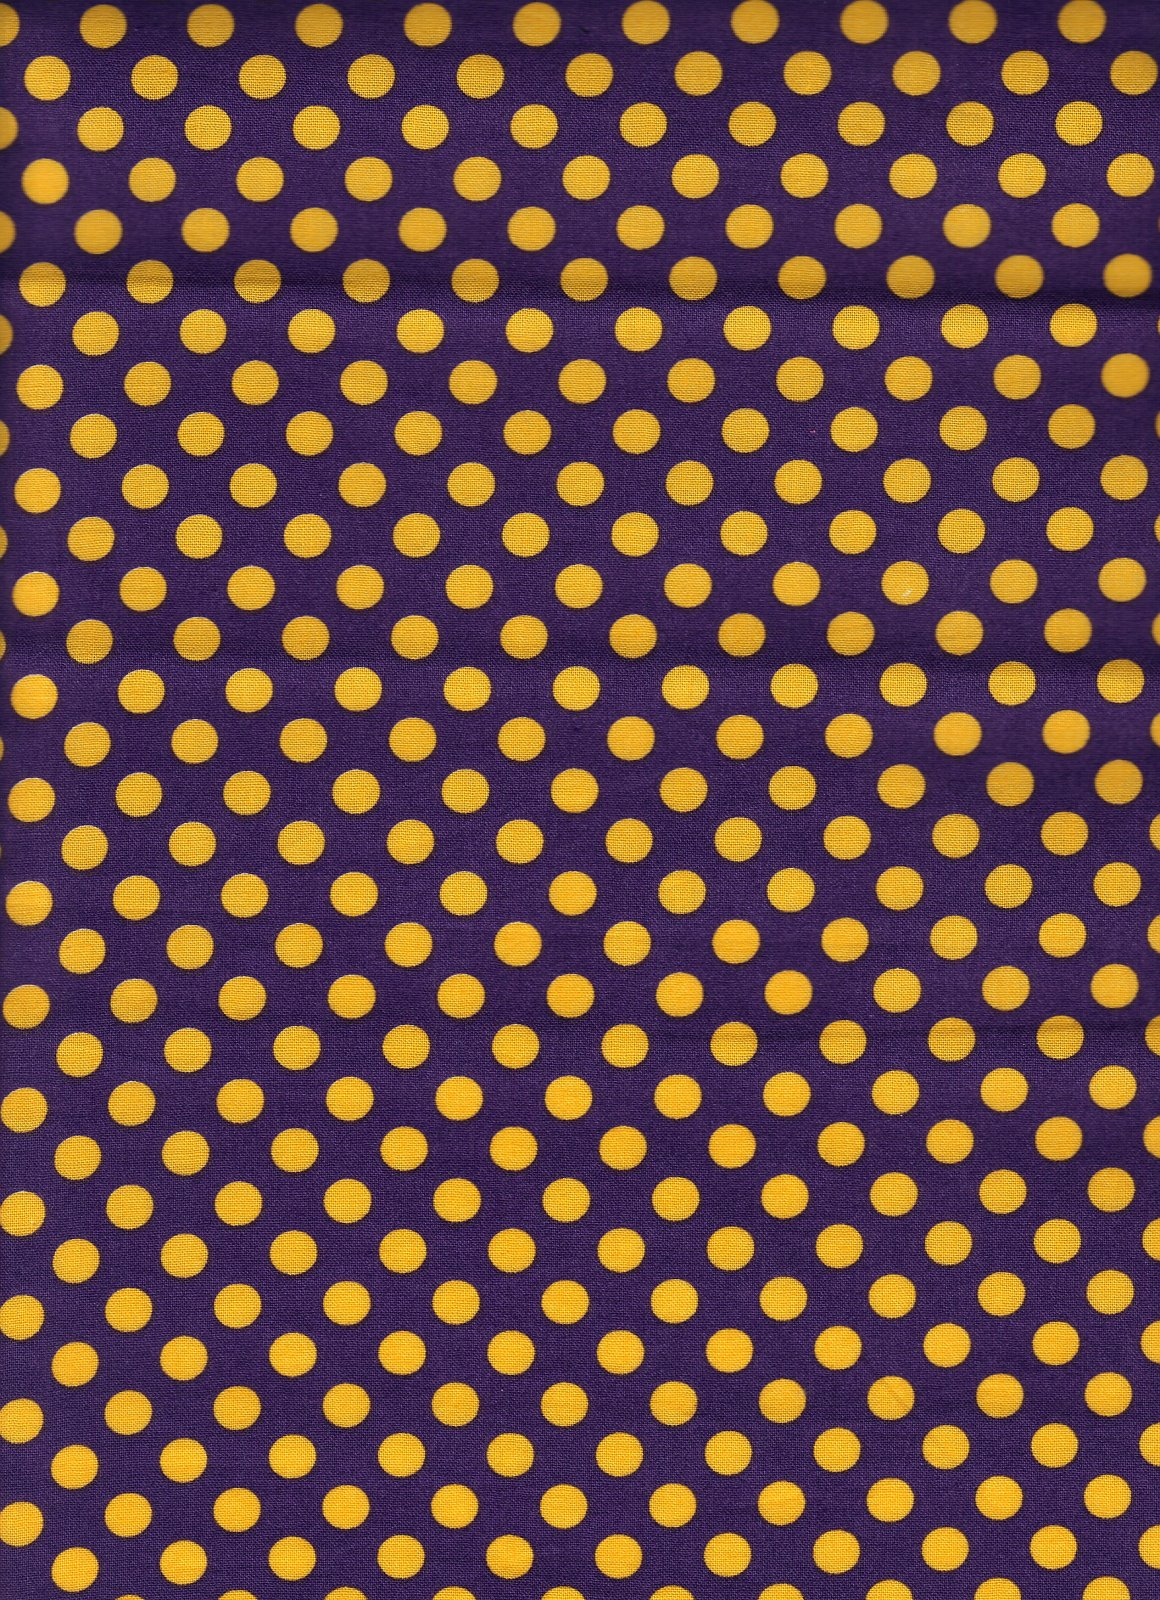 Purple and Gold Dot